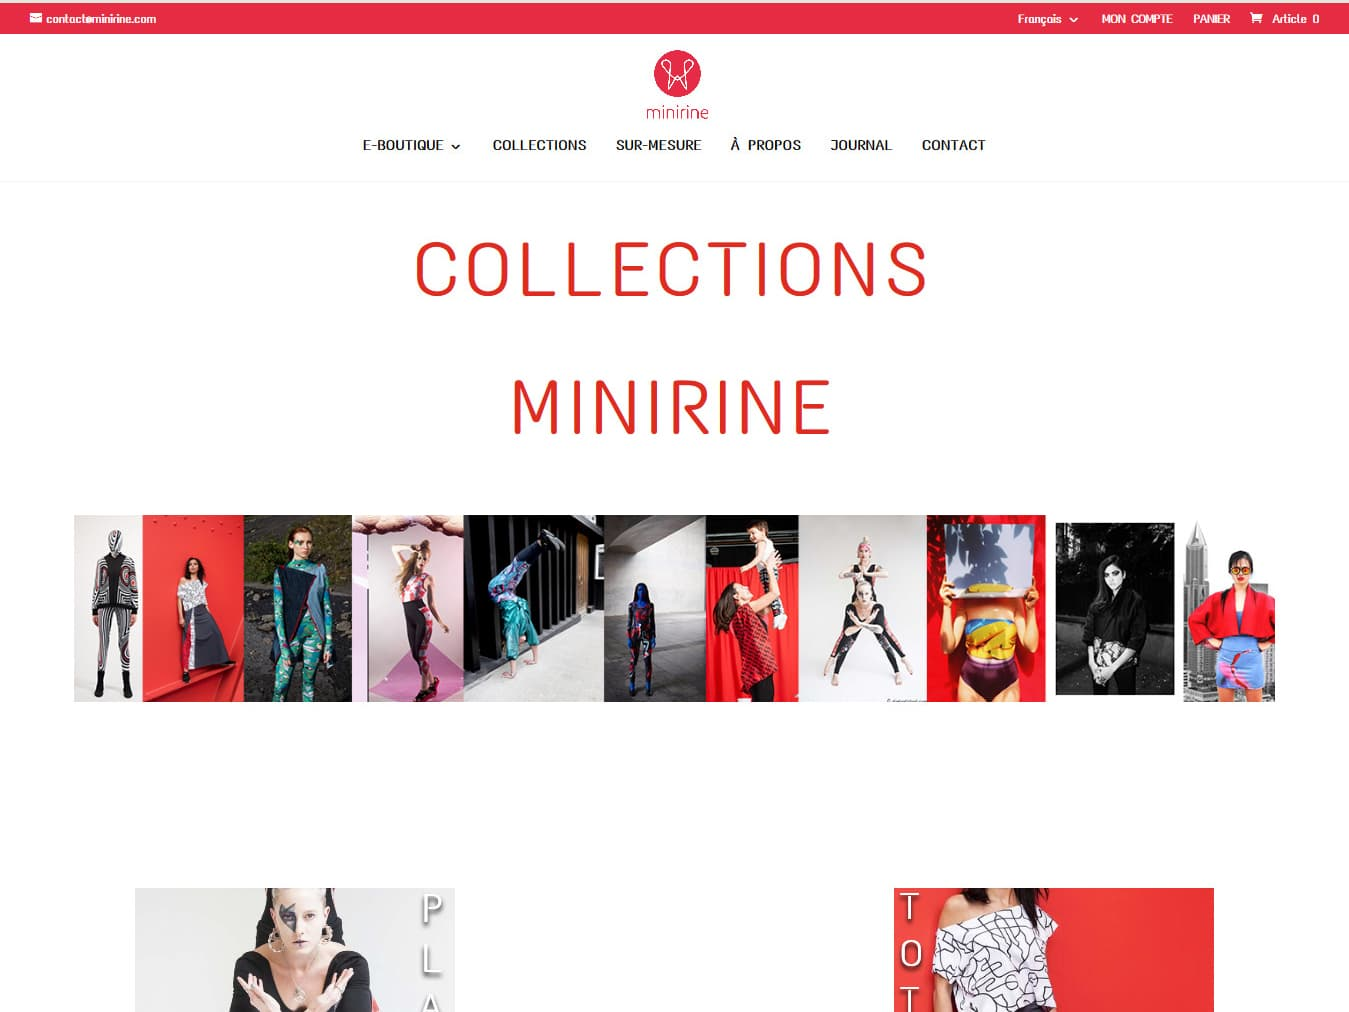 collections_minirine_auriah_rogné